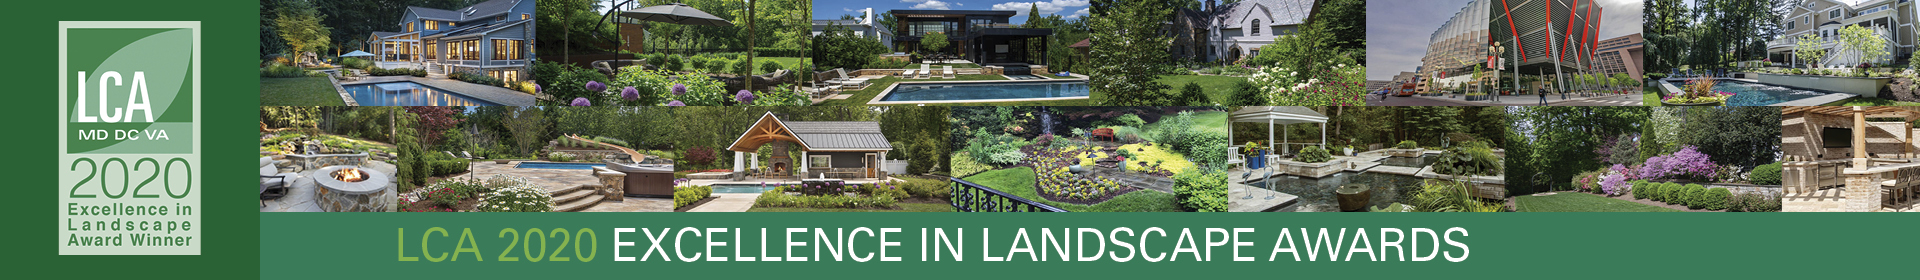 2020 LCA Awards Program <br><br>LCA Mission: To advance the success of members and provide a community for landscape industry professionals. Event Banner